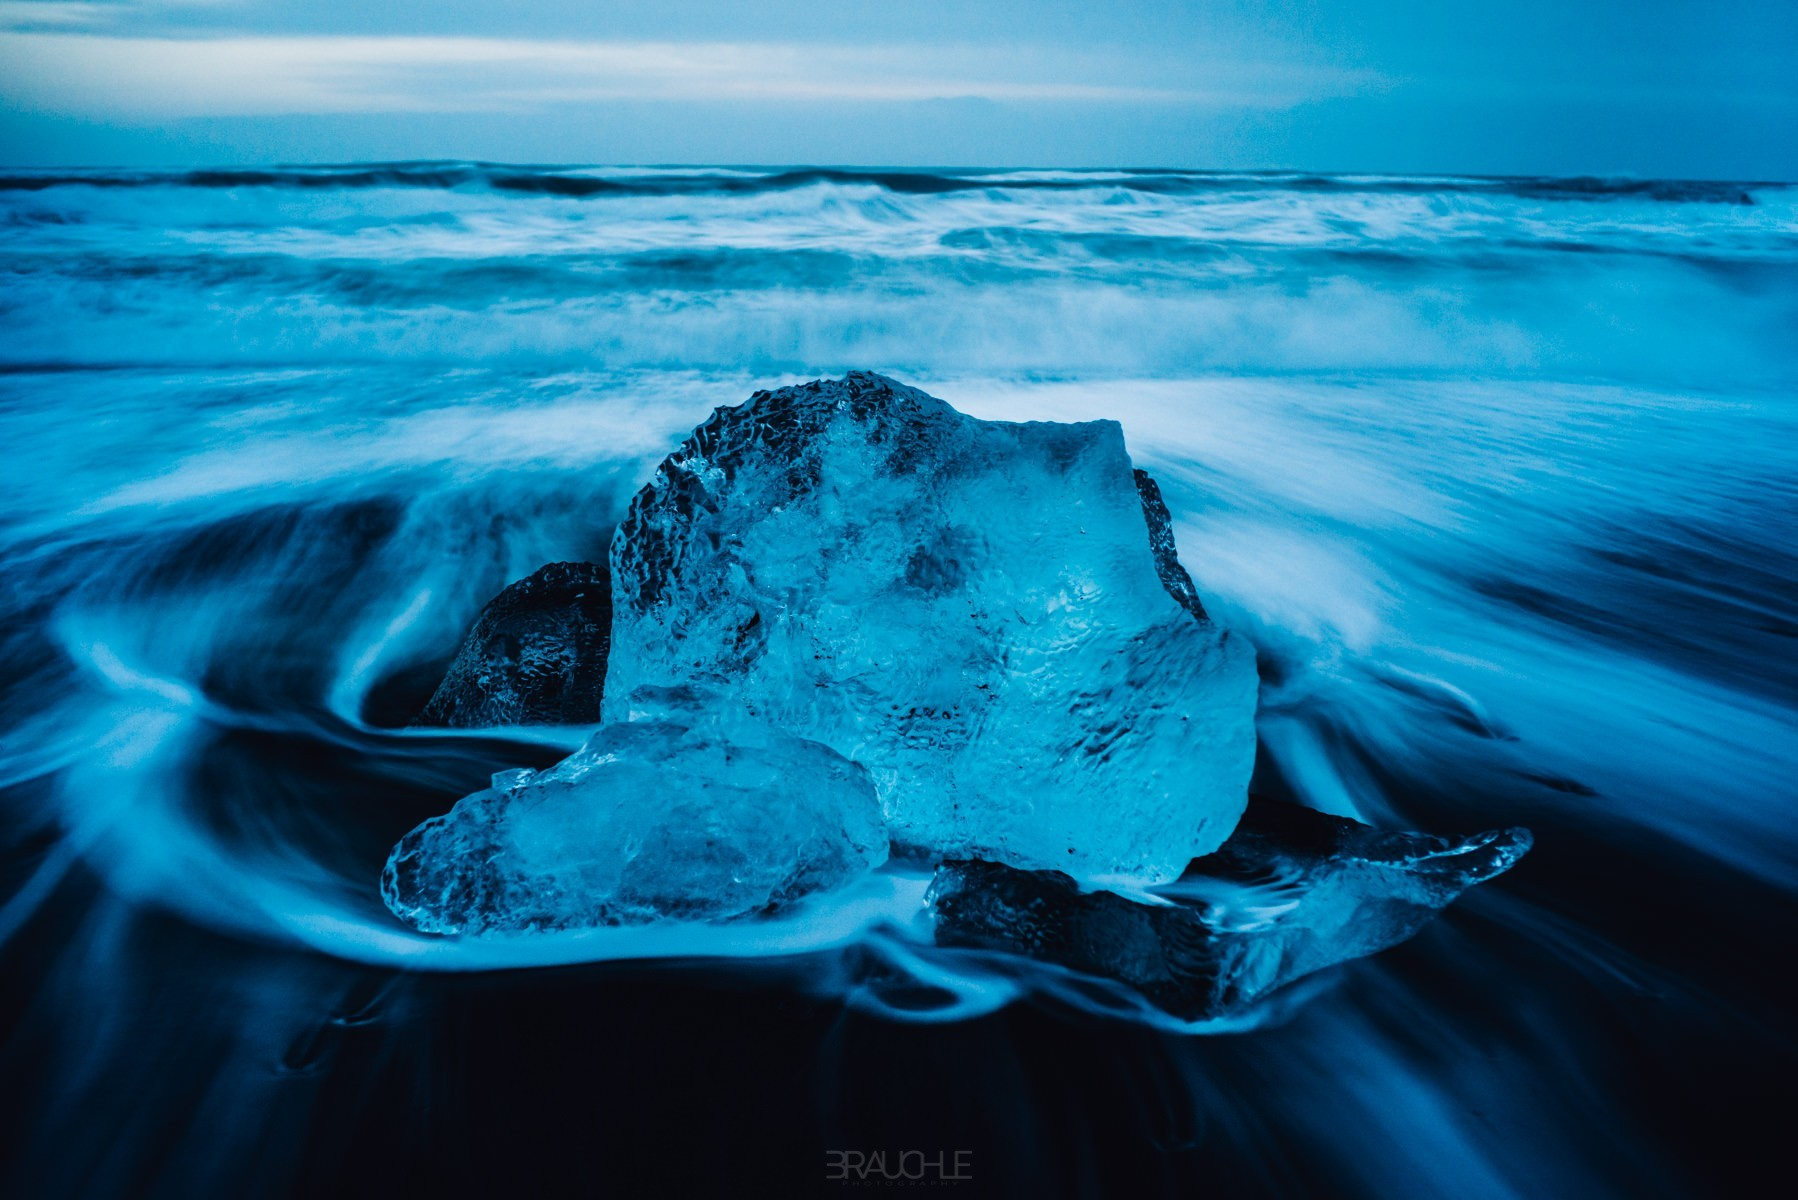 iceland-joekurlarlon-black-beach-ice-blocks-2